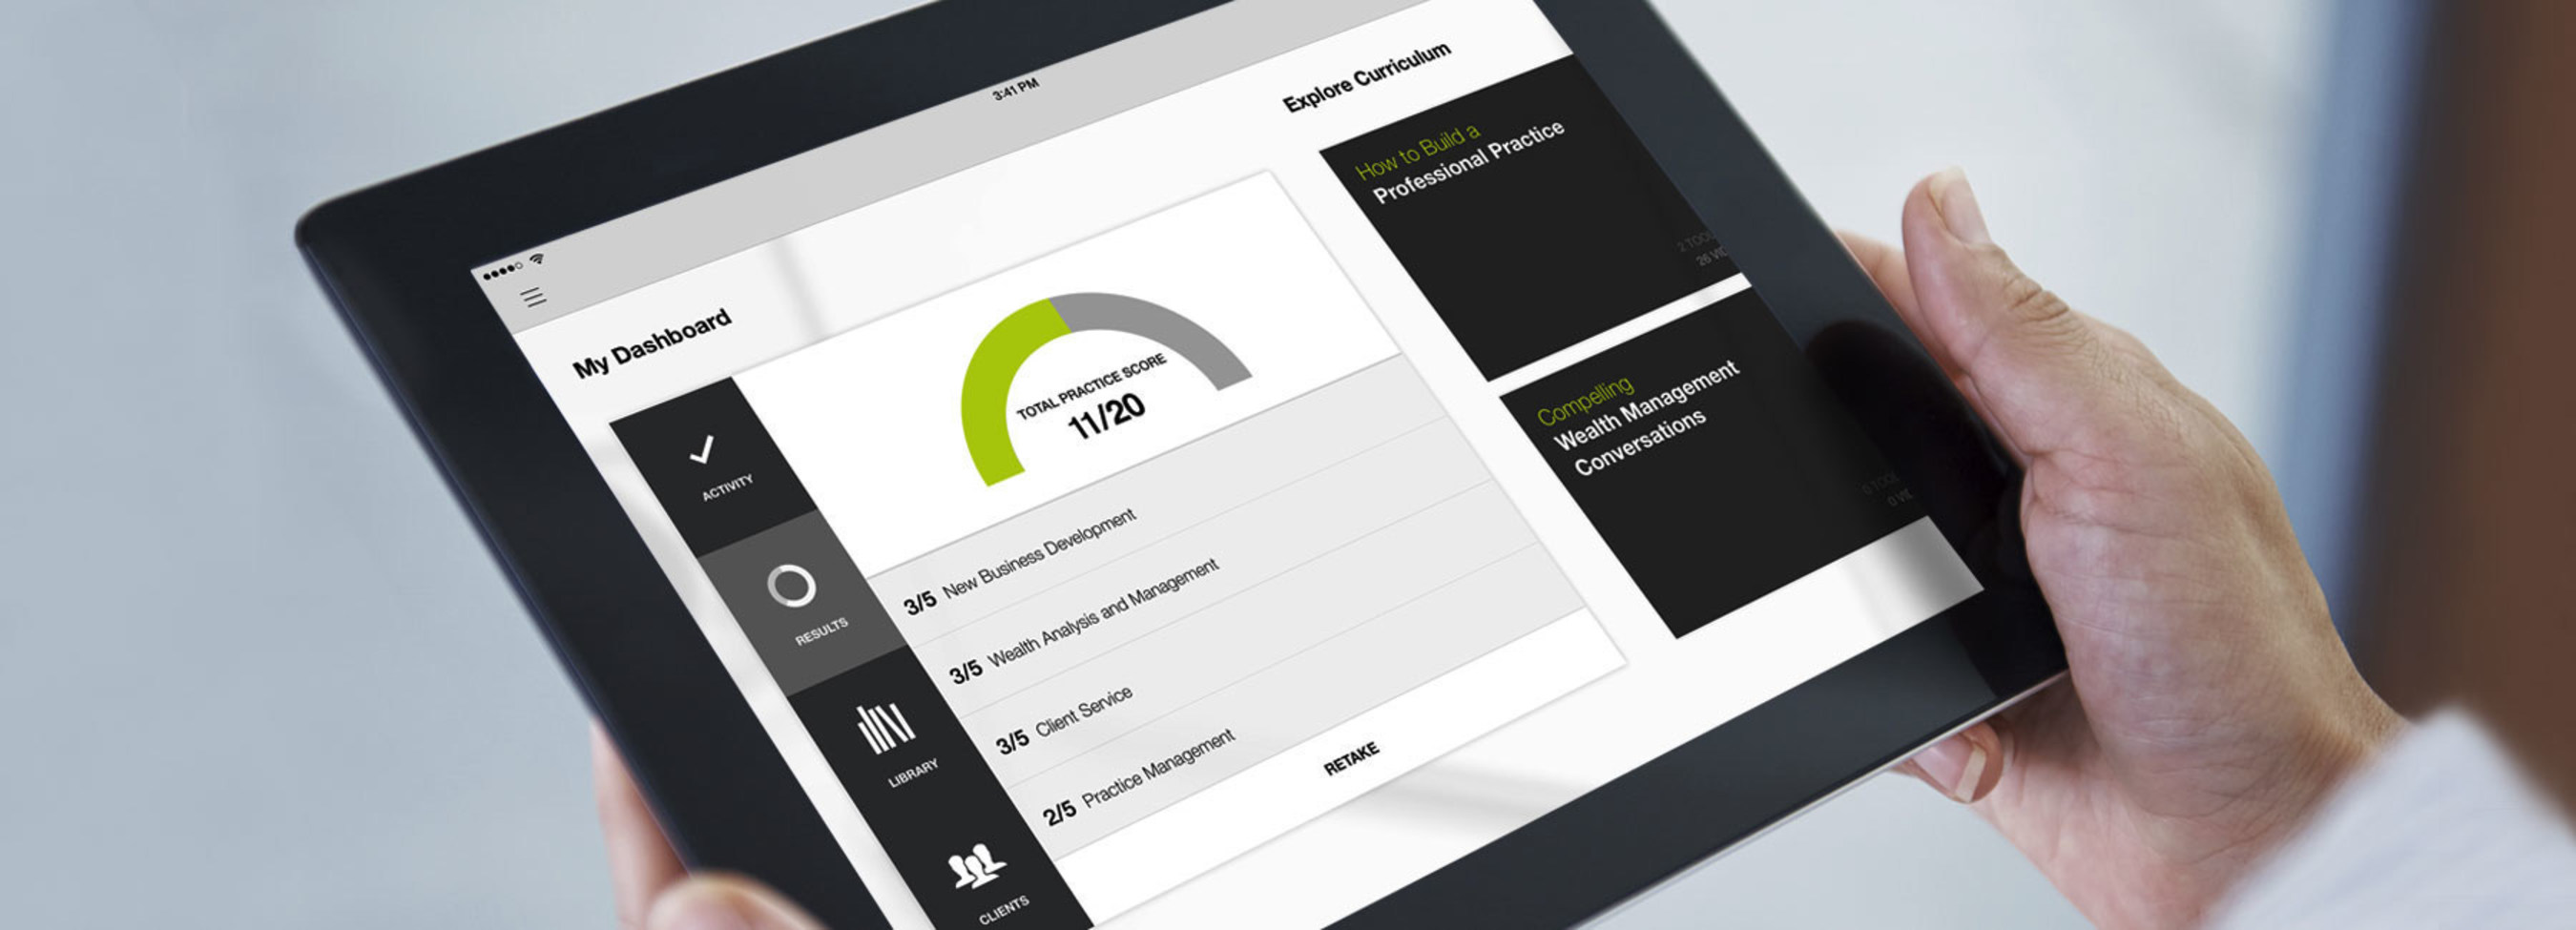 OppenheimerFunds Introduces CEO Advisor Institute App to Help Financial Advisors Achieve Business Goals